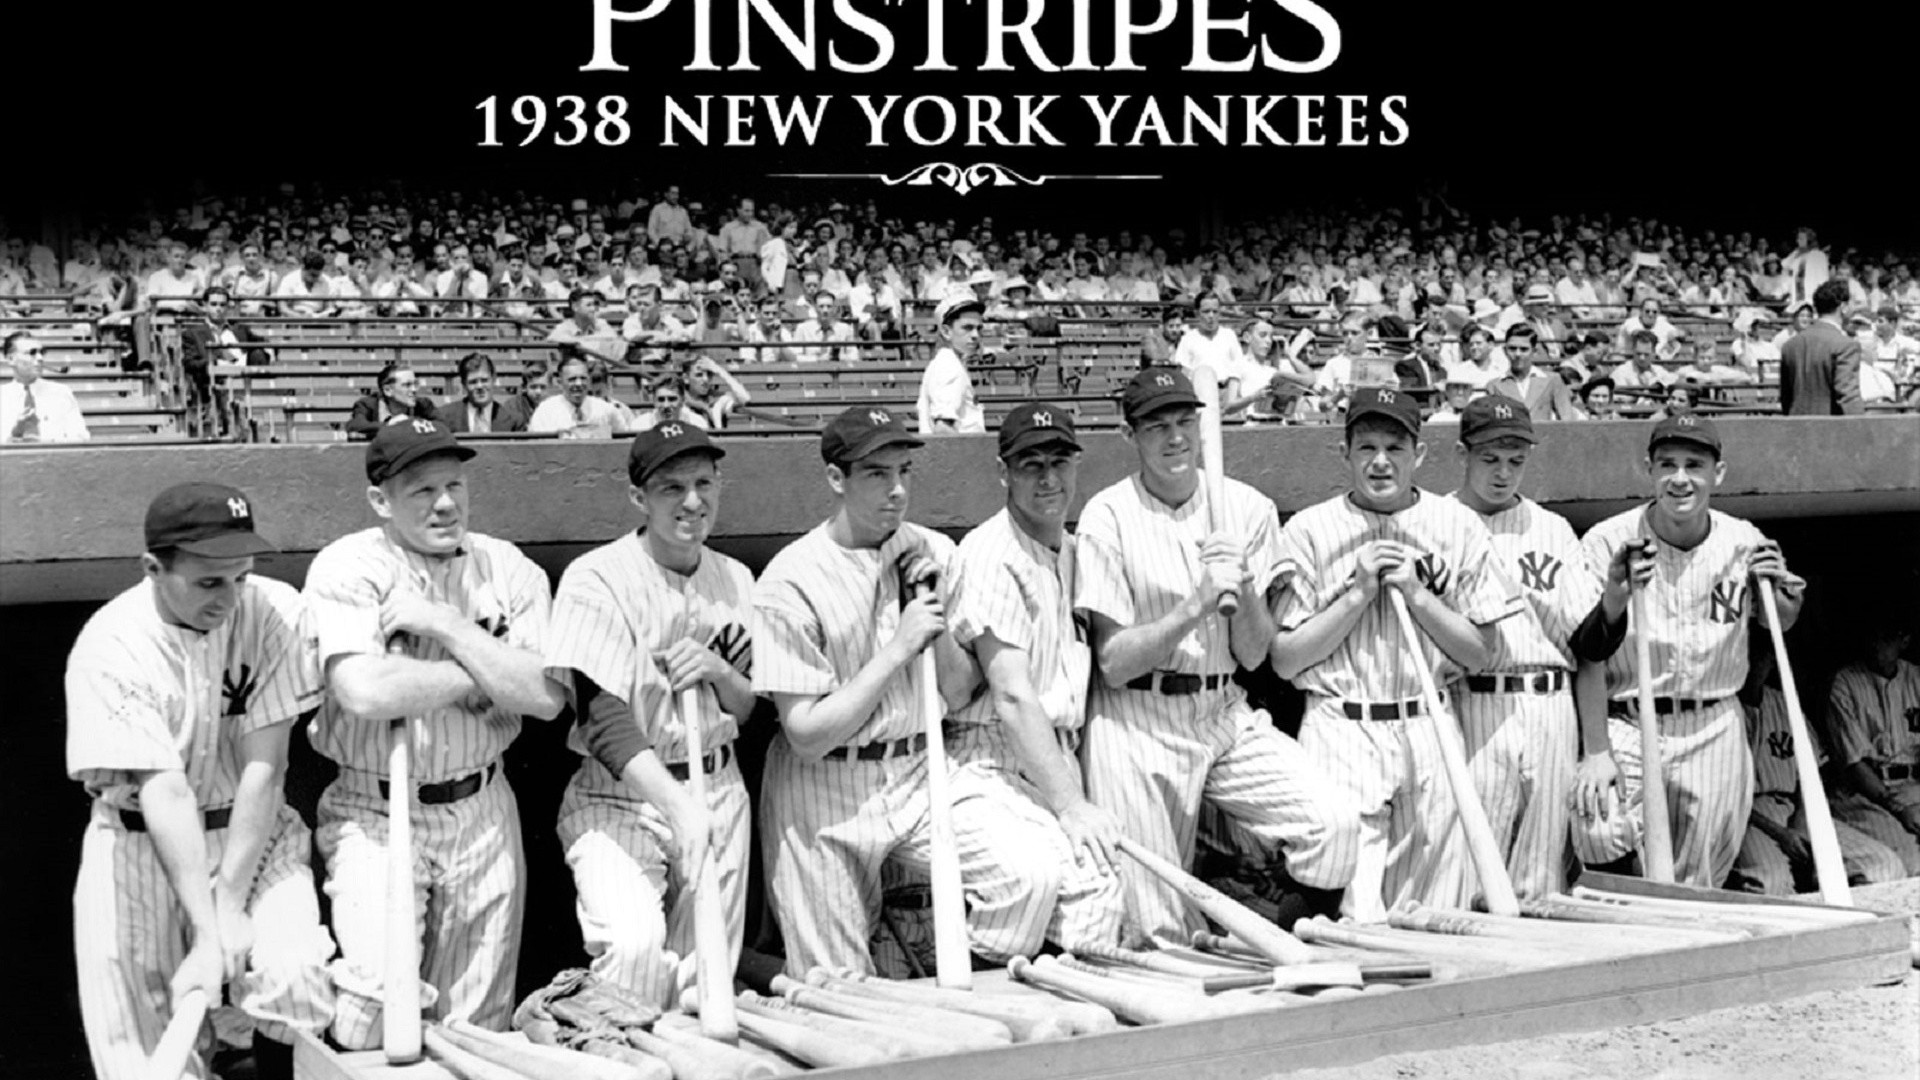 Ny yankees wallpaper 1920×1200 free – go airlines crj 200 images photography